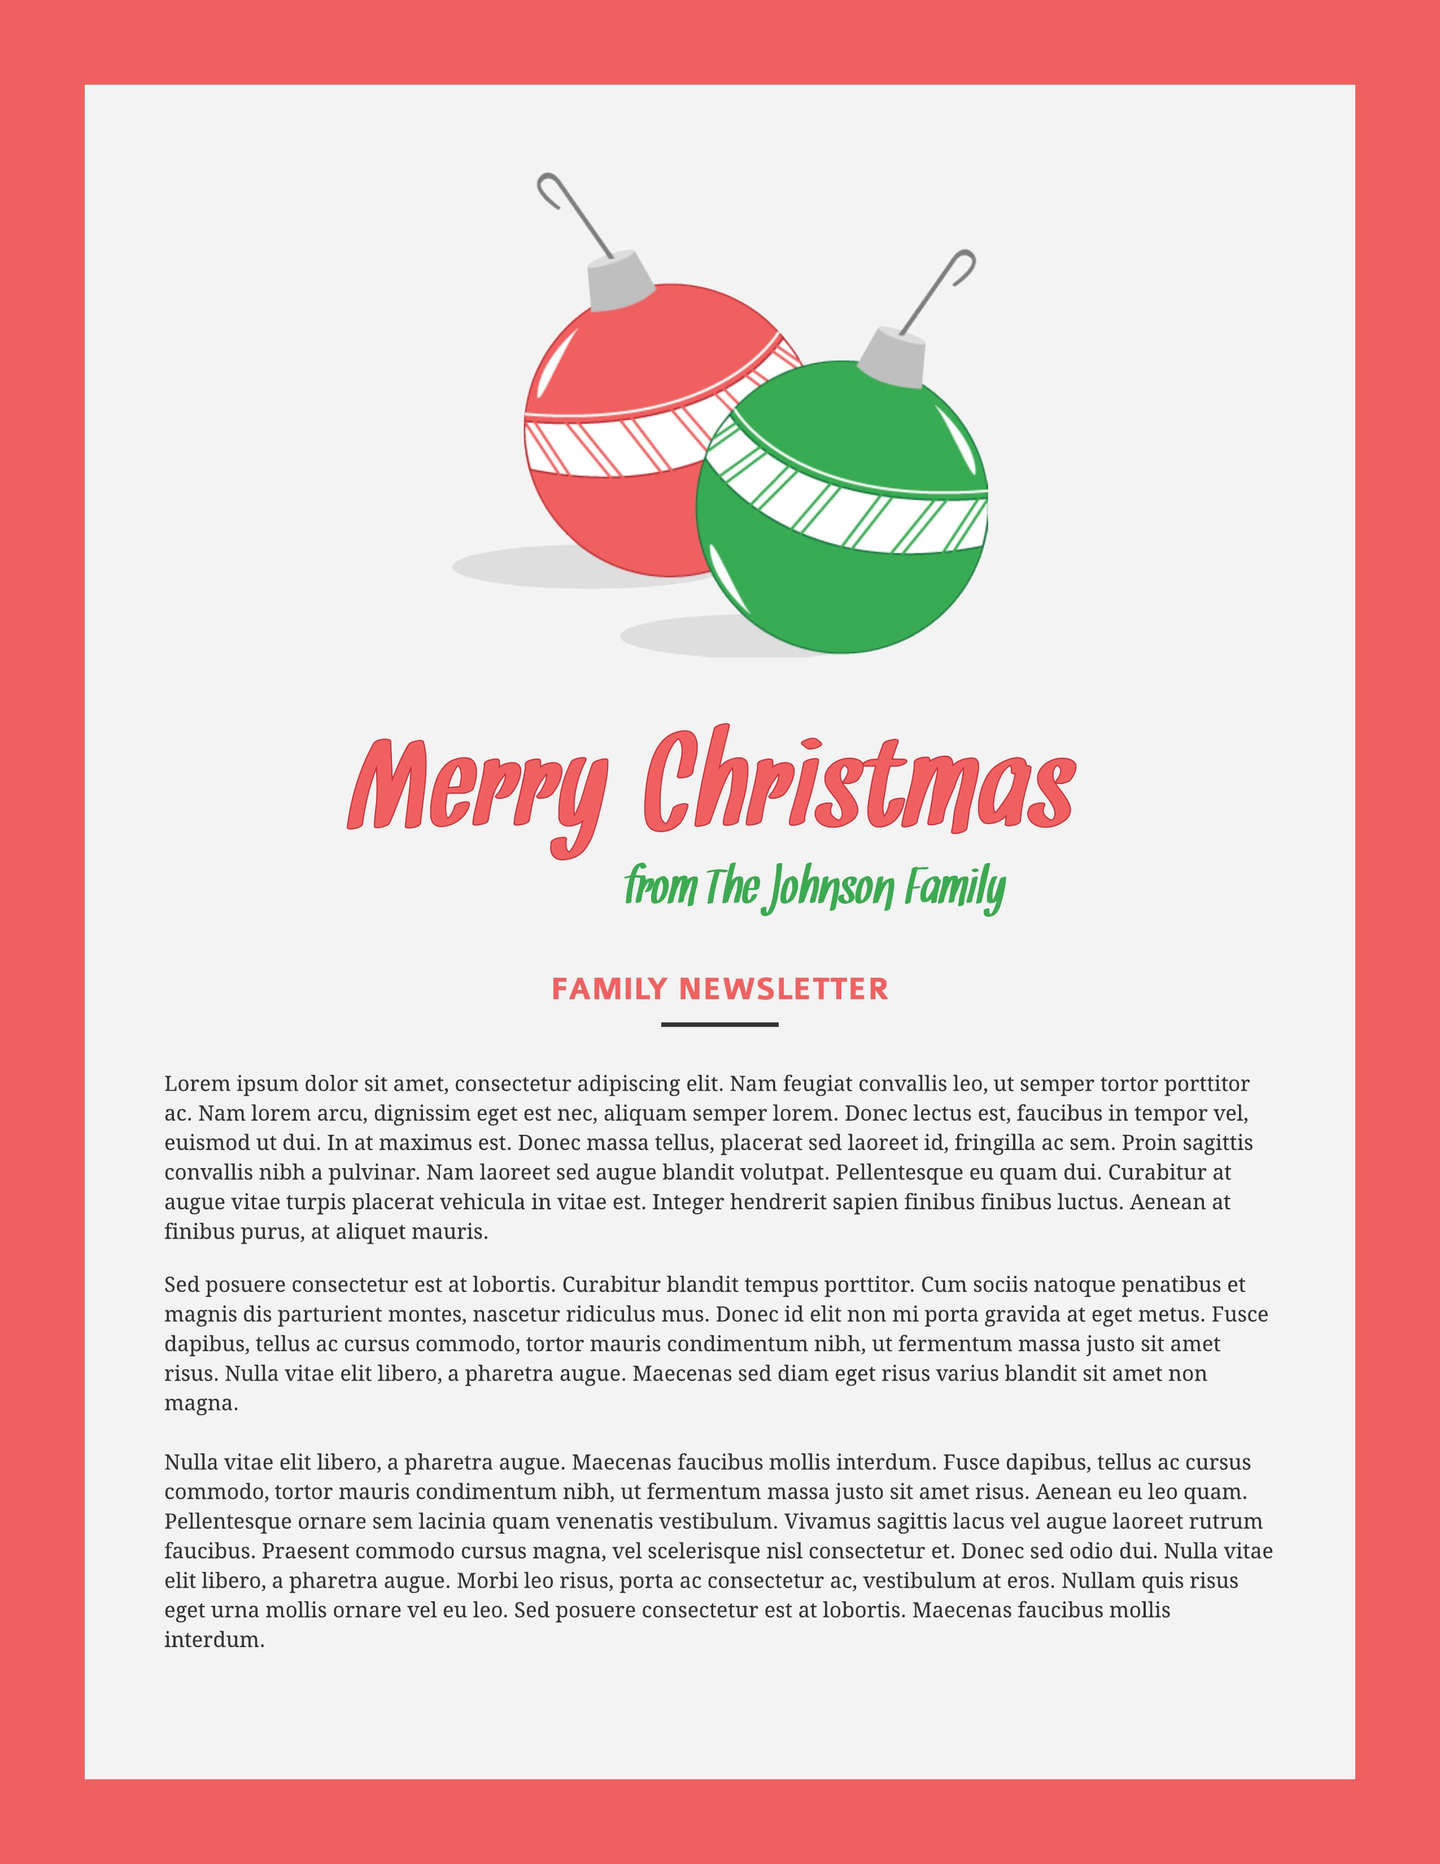 18 free holiday templates examples lucidpress holiday christmas newsletter template spiritdancerdesigns